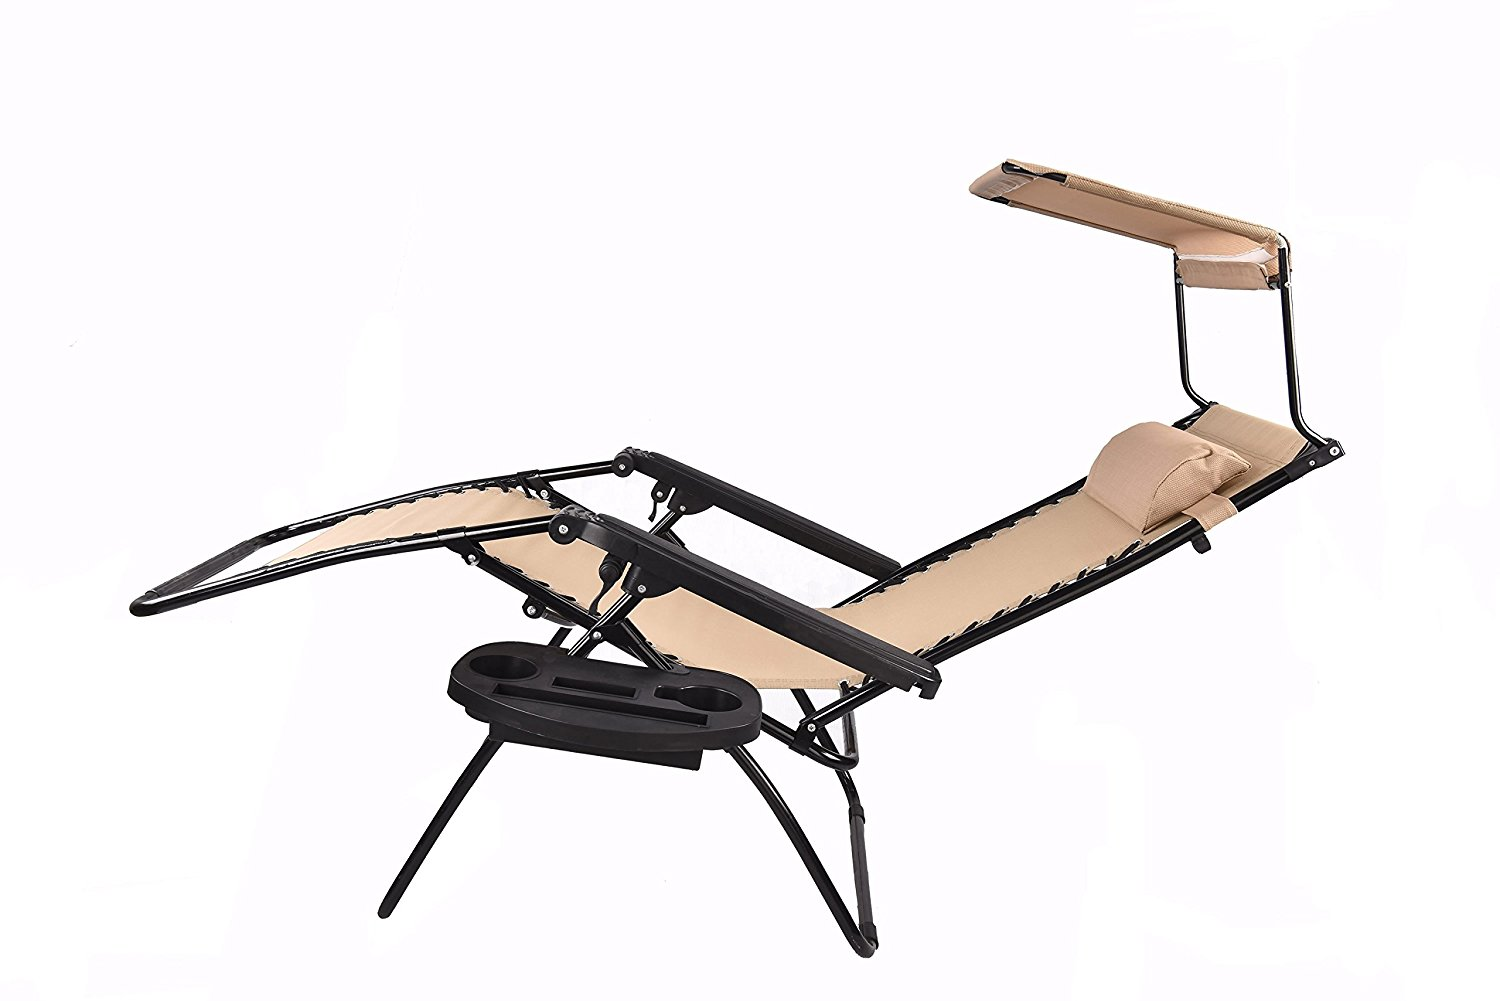 cup holder tray for zero gravity chair dinette chairs with wheels canopy sunshade